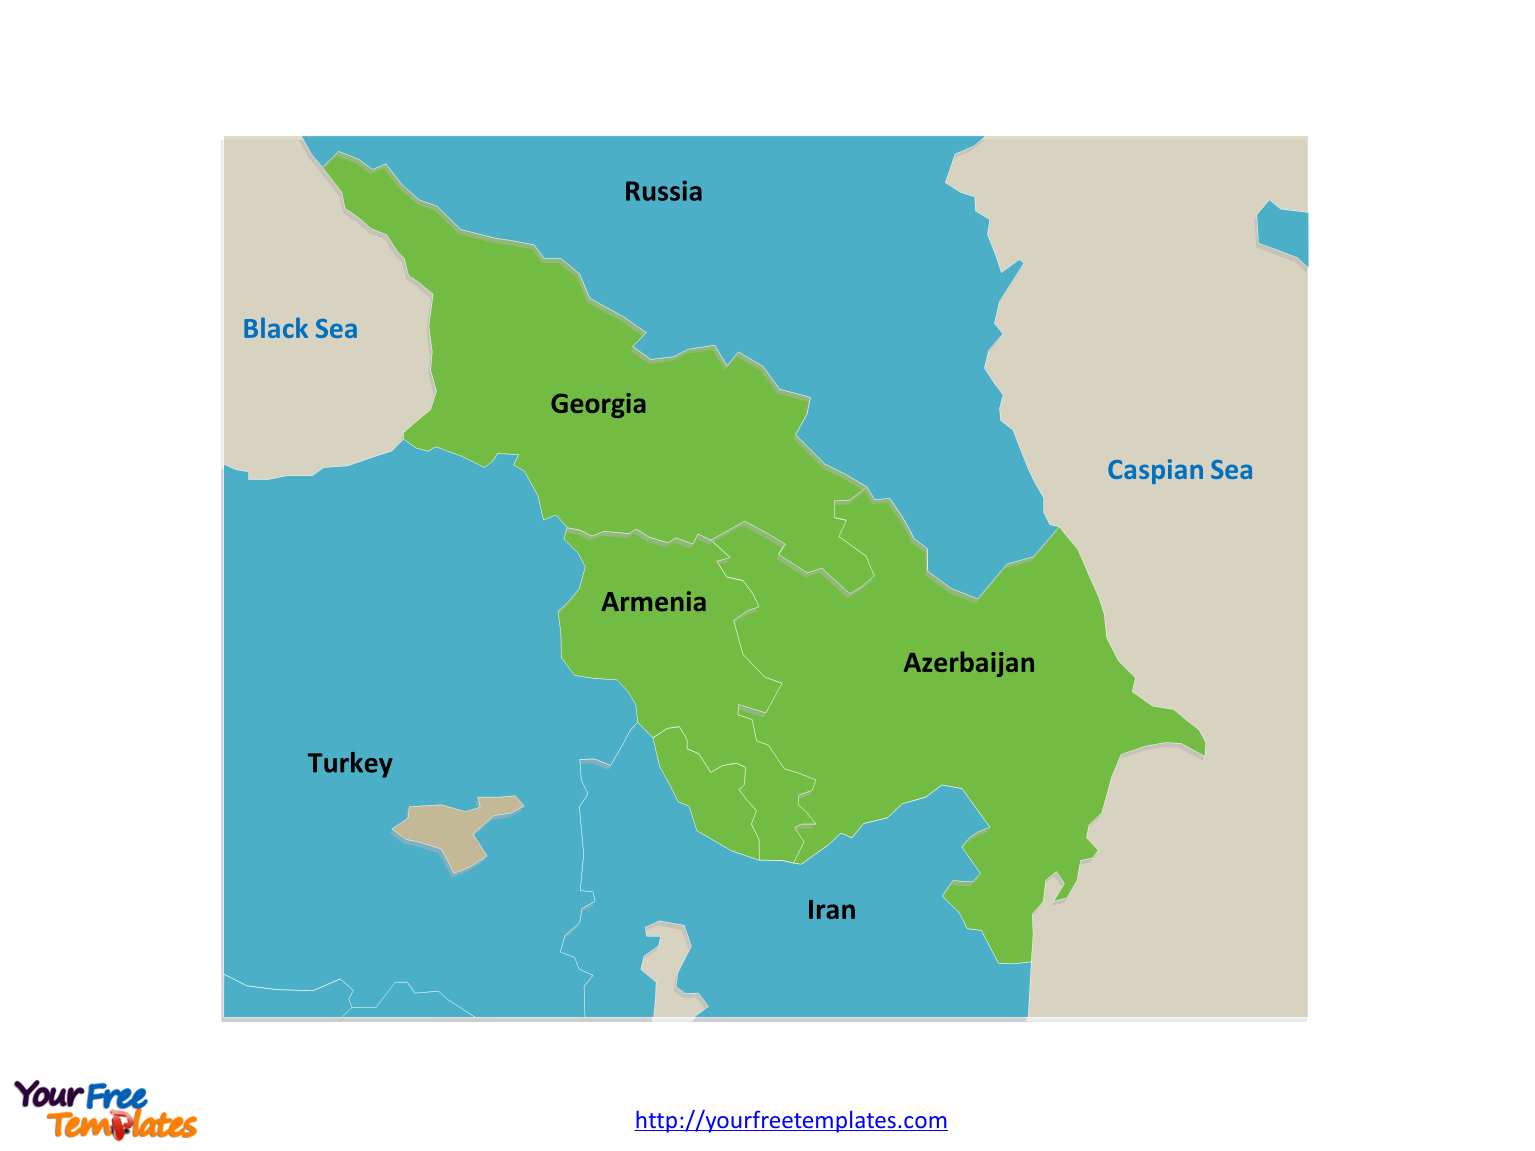 Free caucasus editable map free powerpoint templates caucasus map labeled with country names gumiabroncs Choice Image